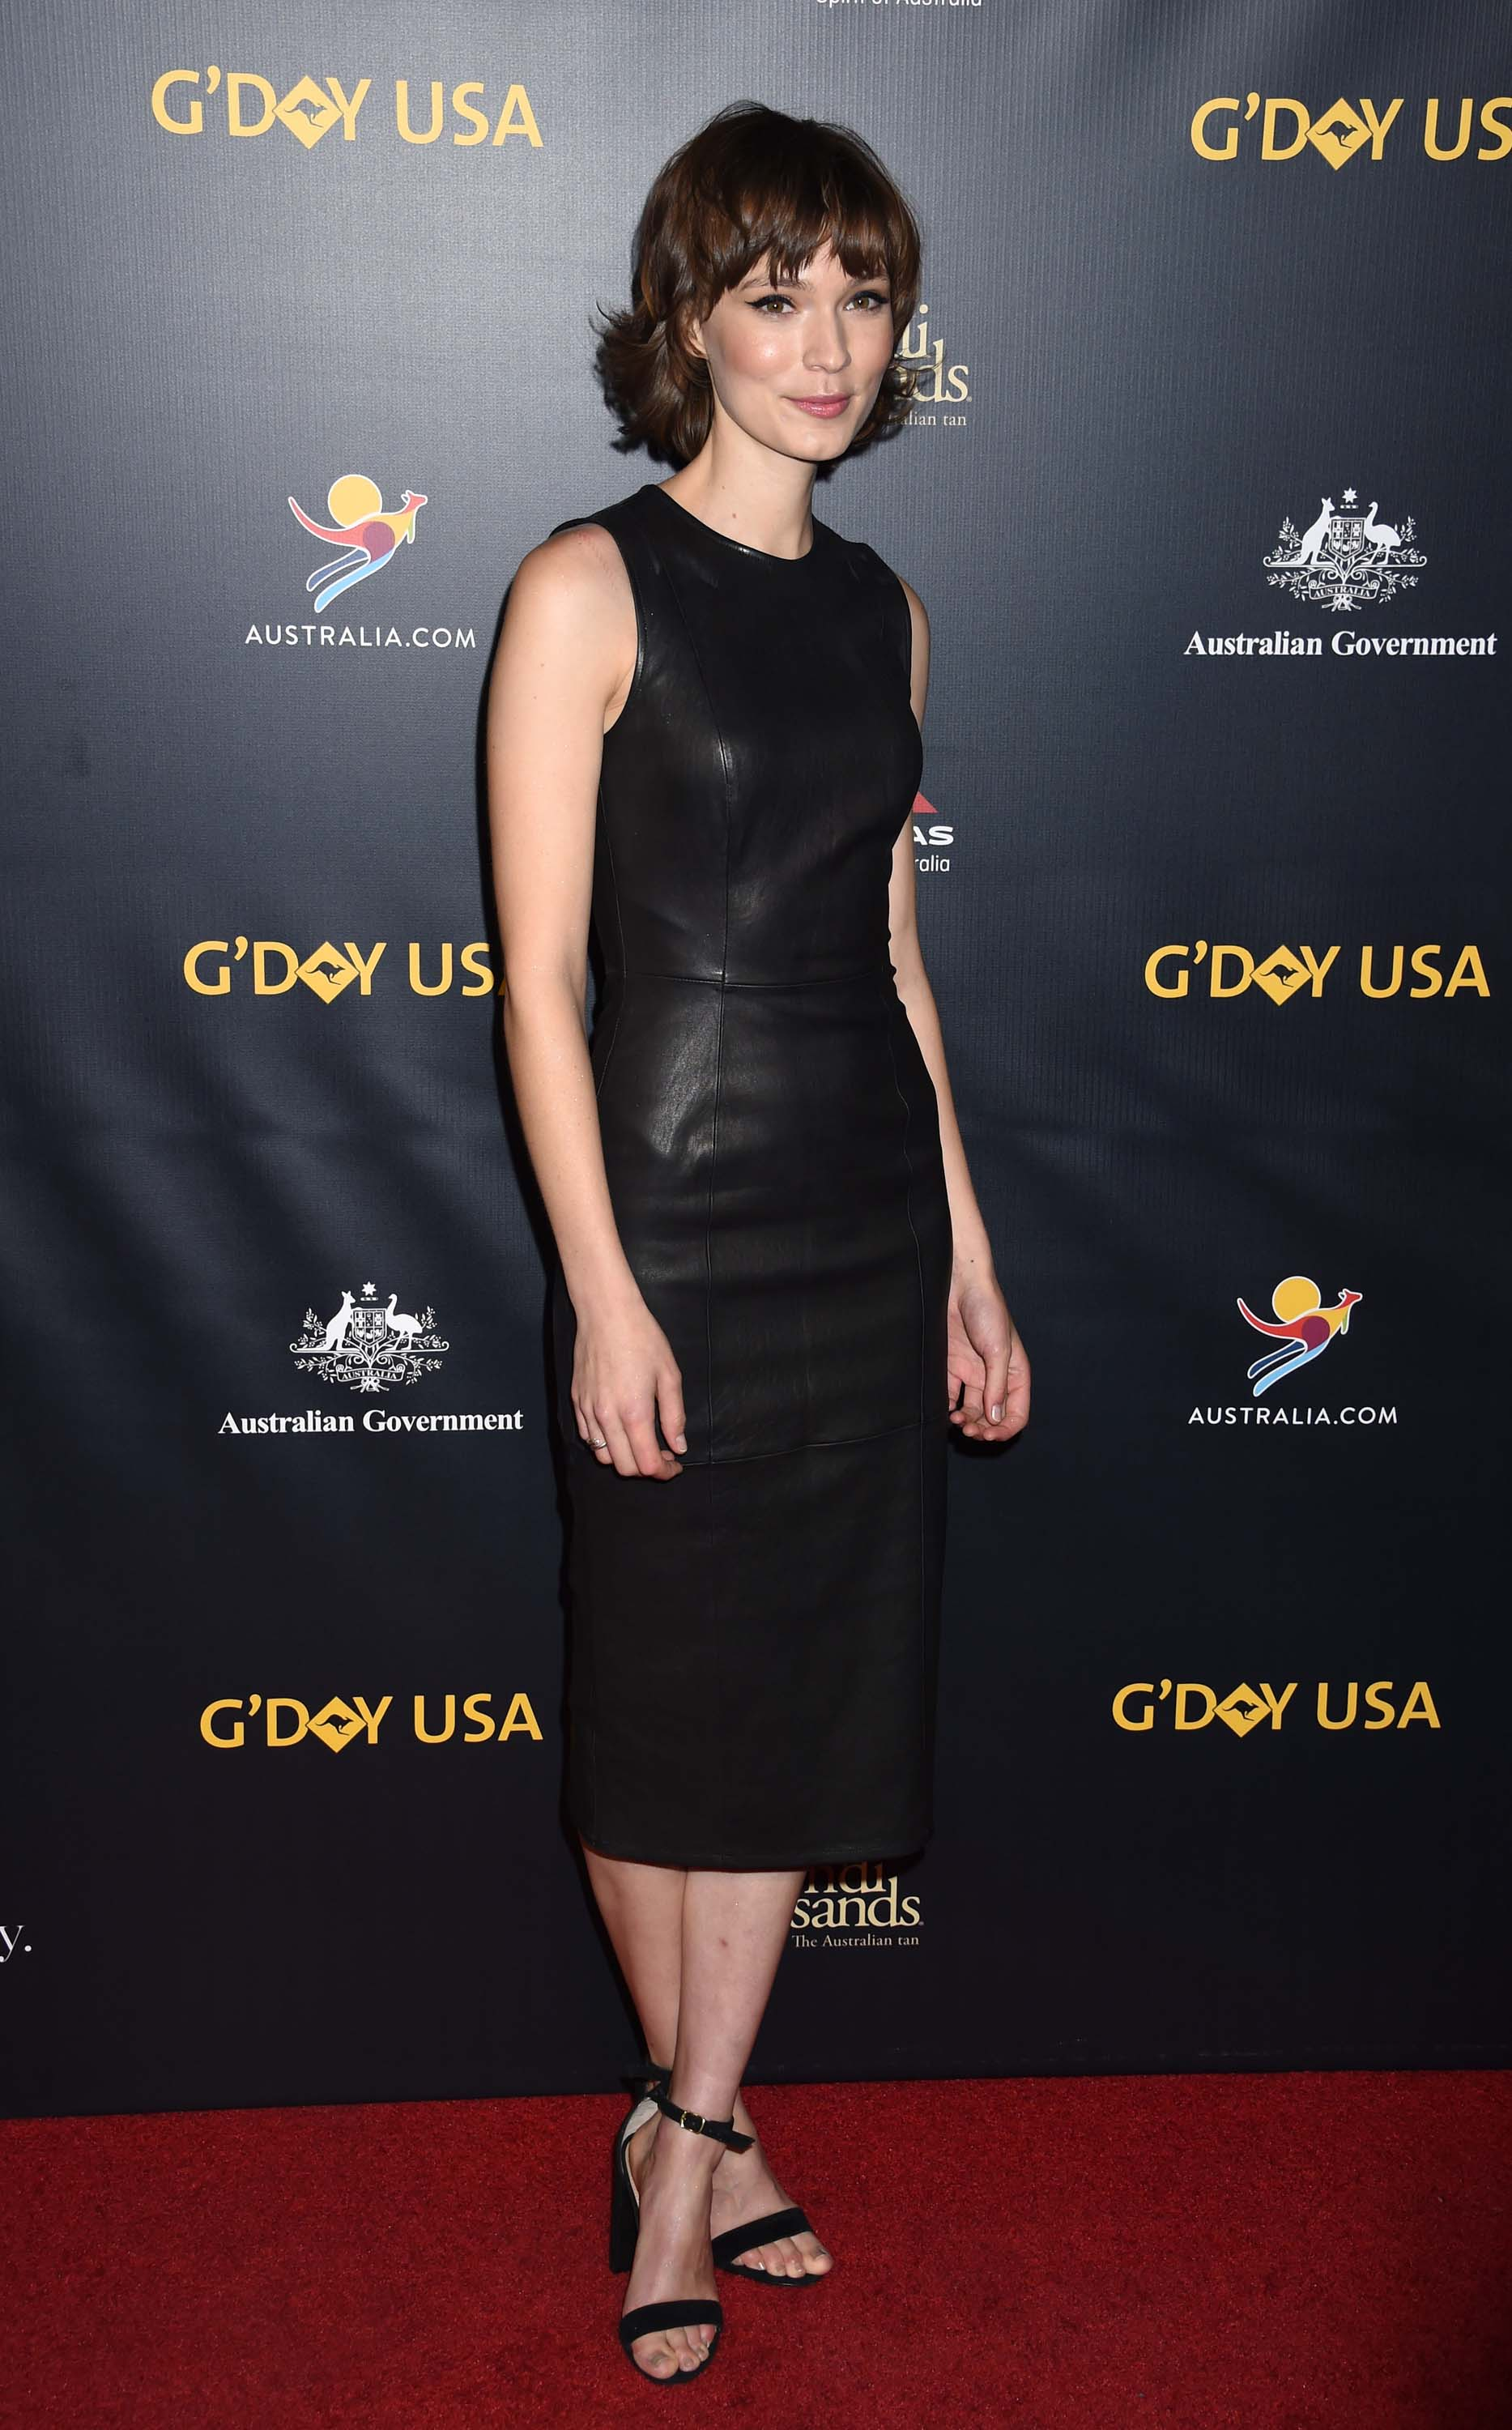 Tilda Cobham-Hervey attends 16th Annual G'Day USA Black Tie Gala